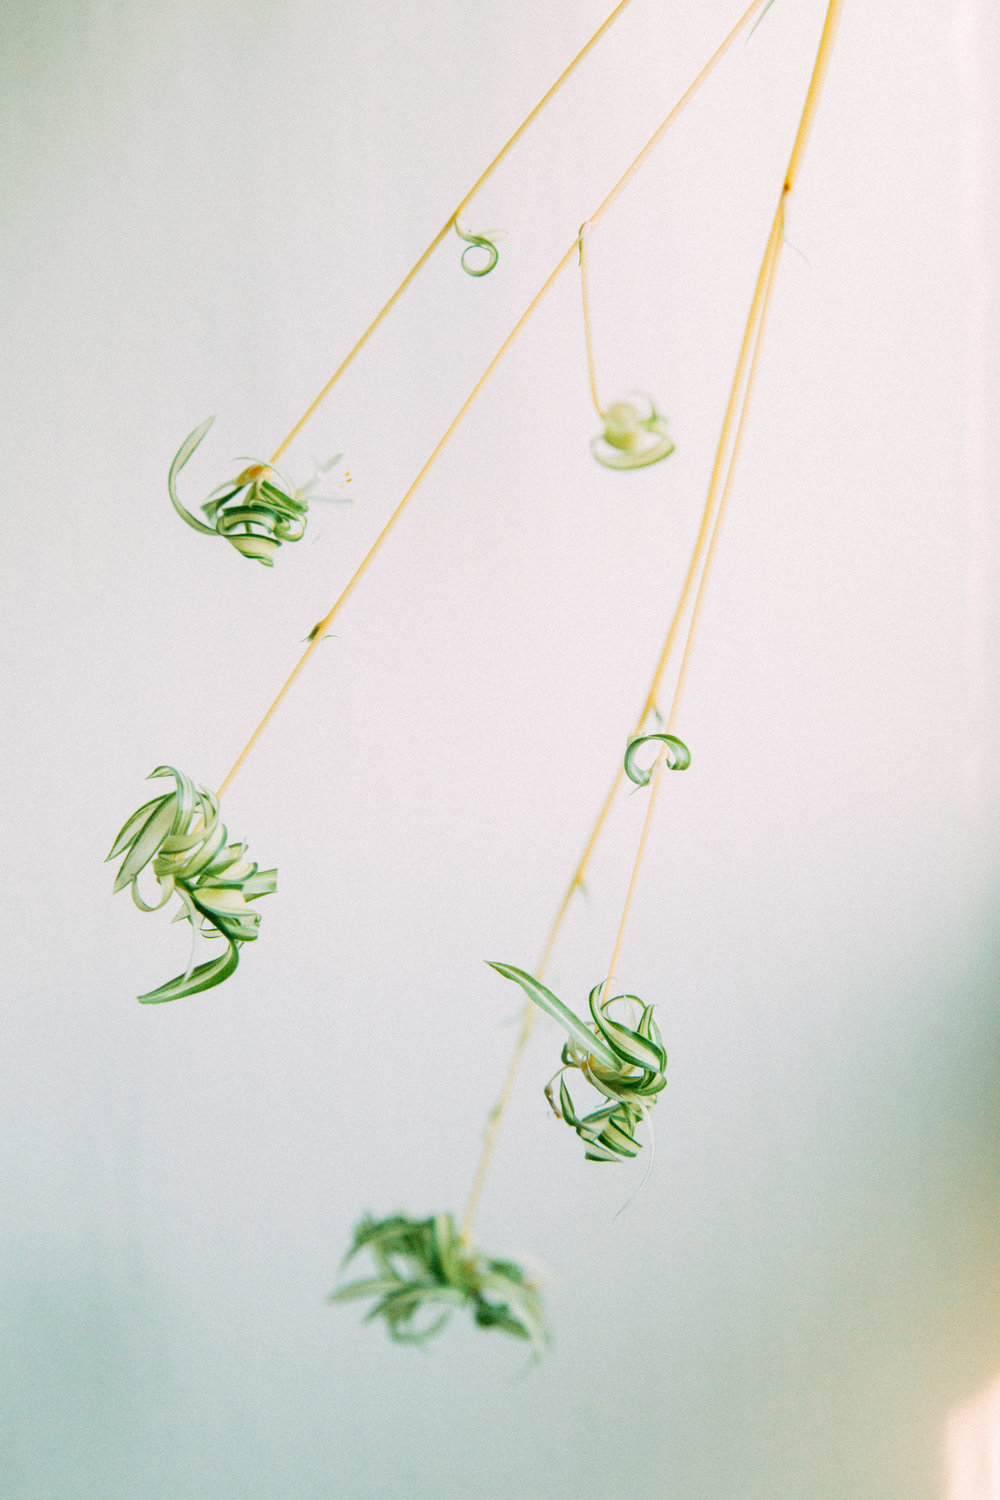 Spider Plant   Best Plants for Purer Air